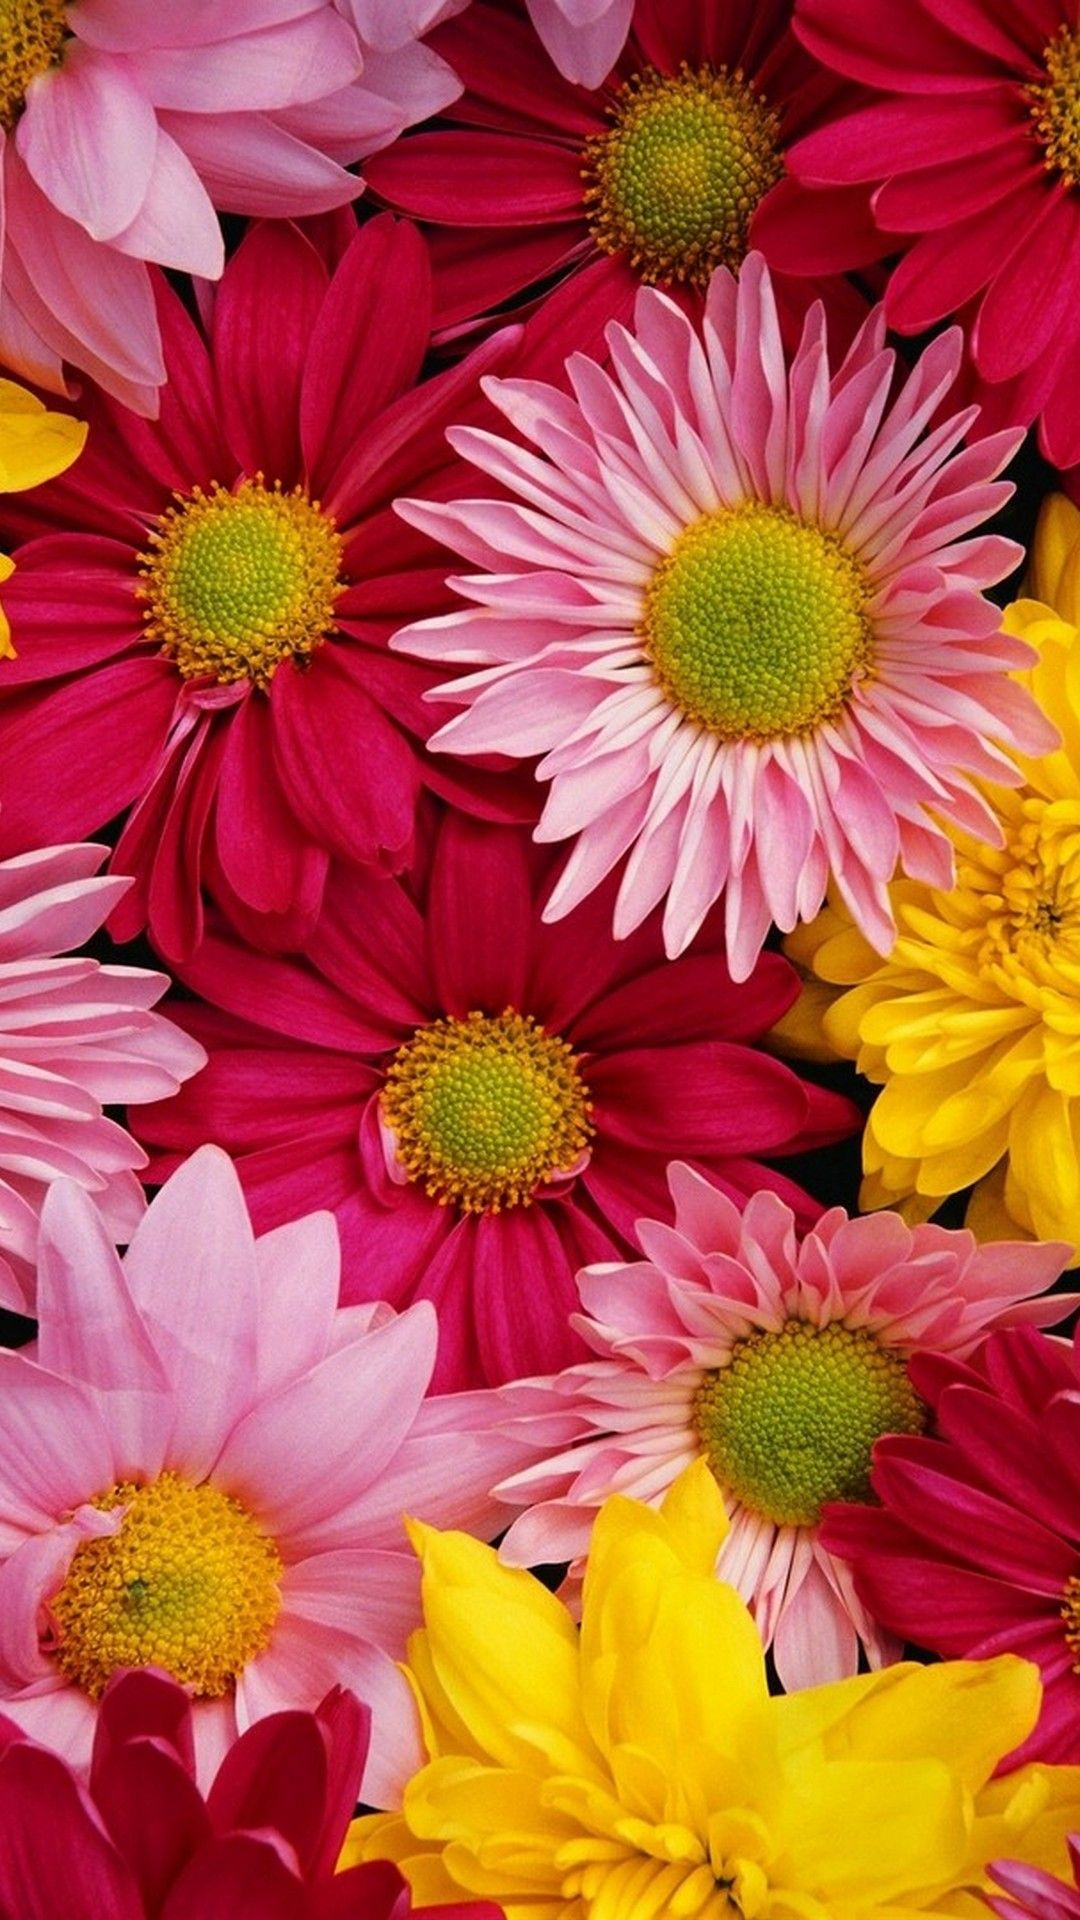 Flower Iphone Wallpapers Top Free Flower Iphone Backgrounds Wallpaperaccess